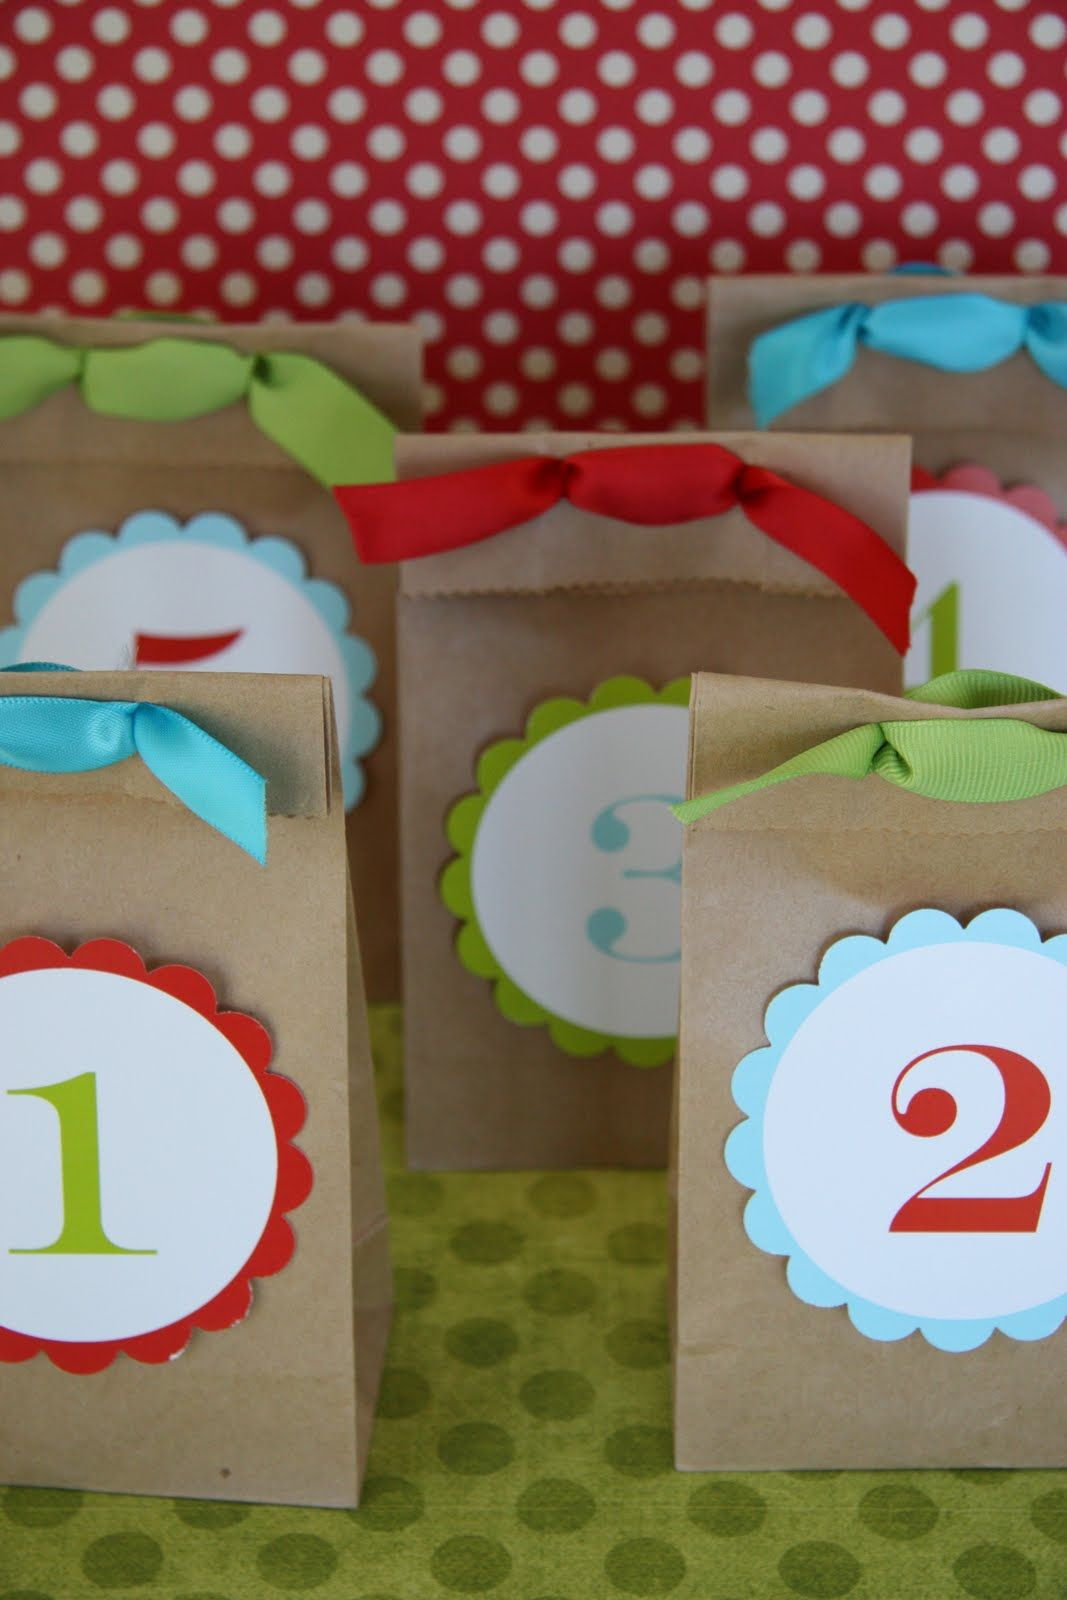 Free printable number tags for kids birthday party favor bags or Christmas countdown goodies.